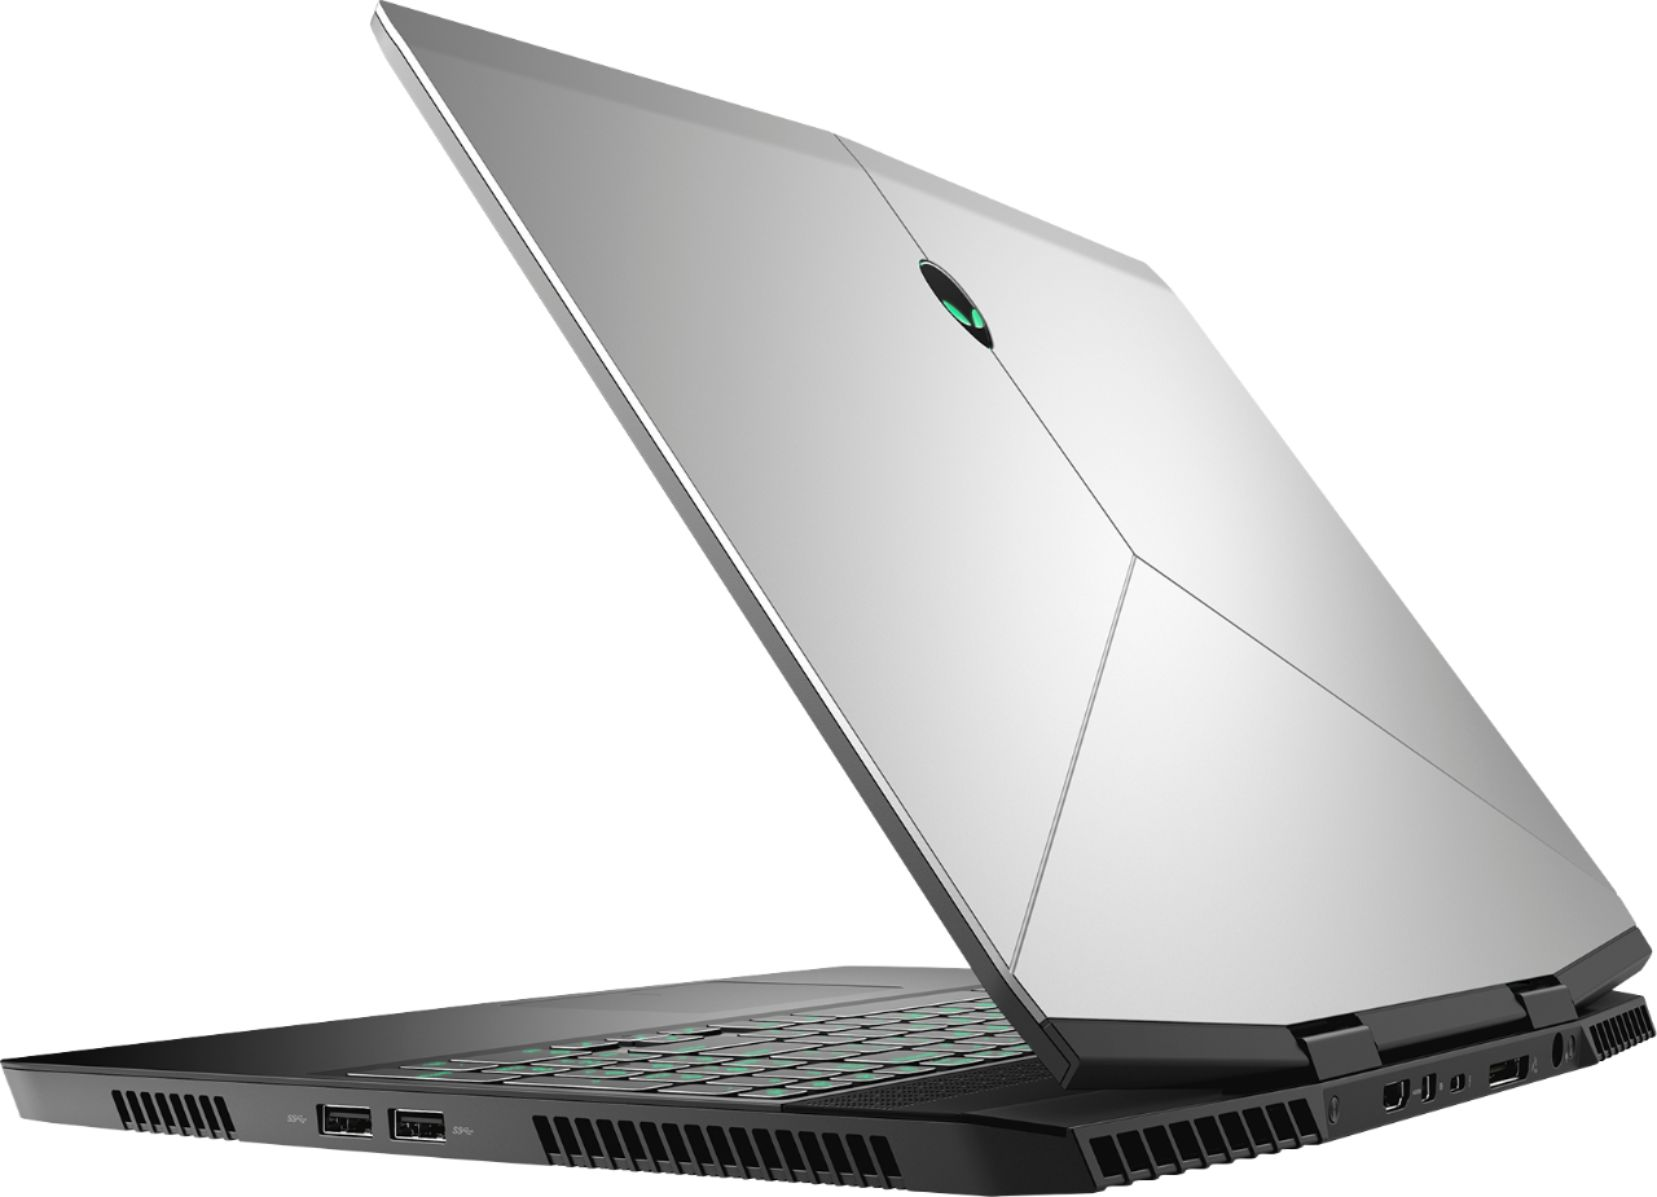 "Alt View Zoom 1. Alienware - Geek Squad Certified Refurbished 15.6"" Laptop - Intel Core i7 - 16GB Memory - NVIDIA GeForce GTX 1060 - 1TB HD+128GB SSD - Silver."